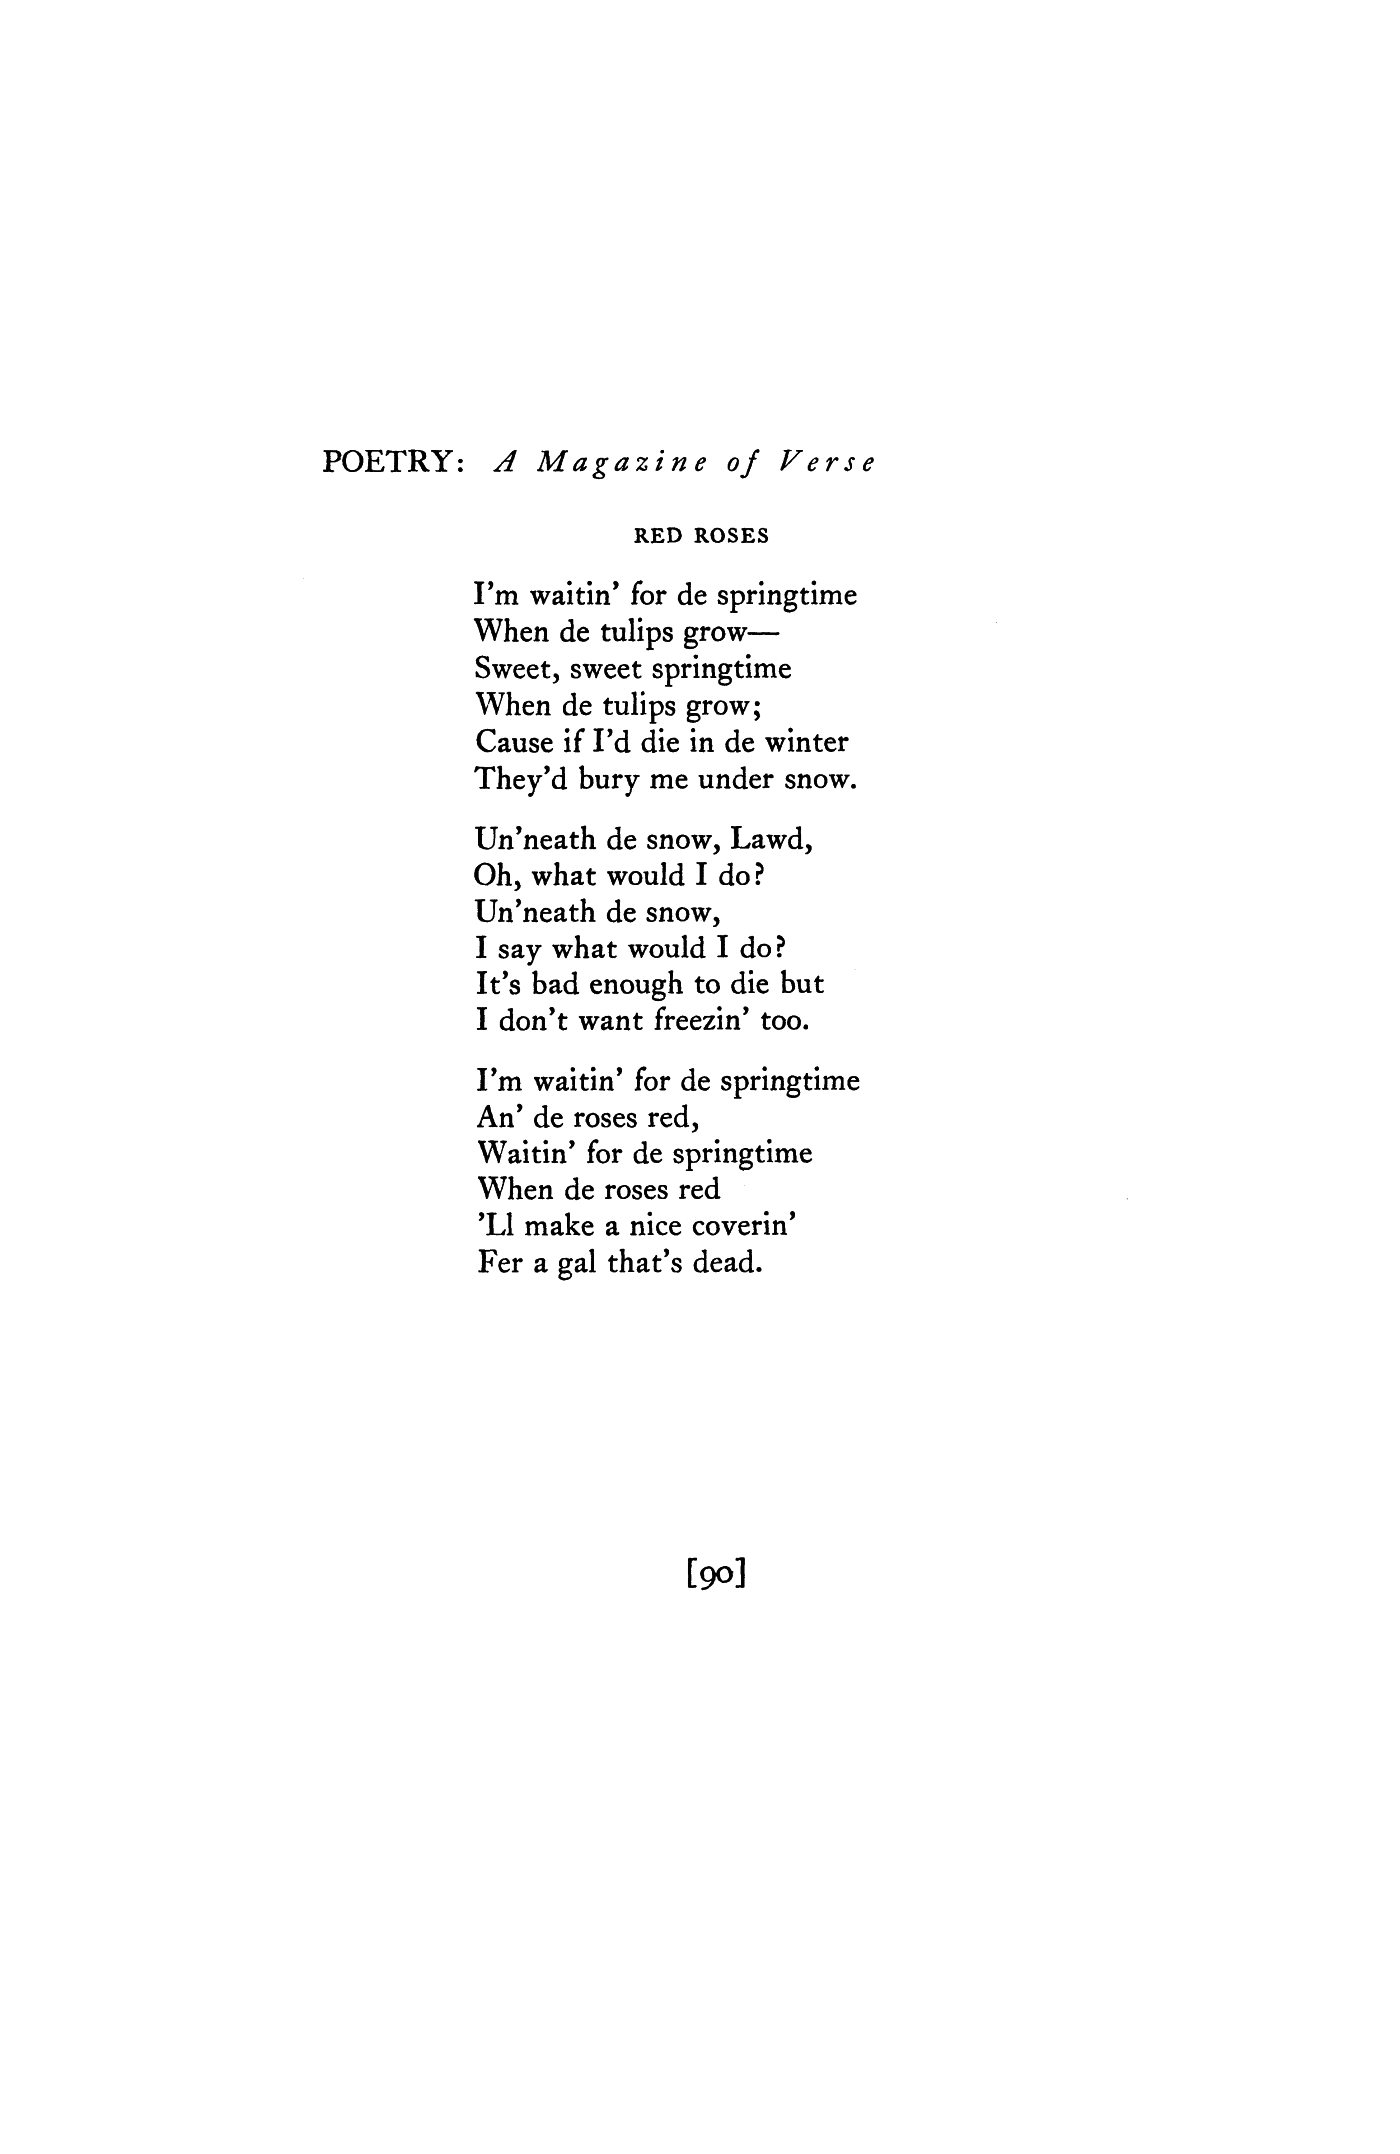 red roses by langston hughes poetry magazine